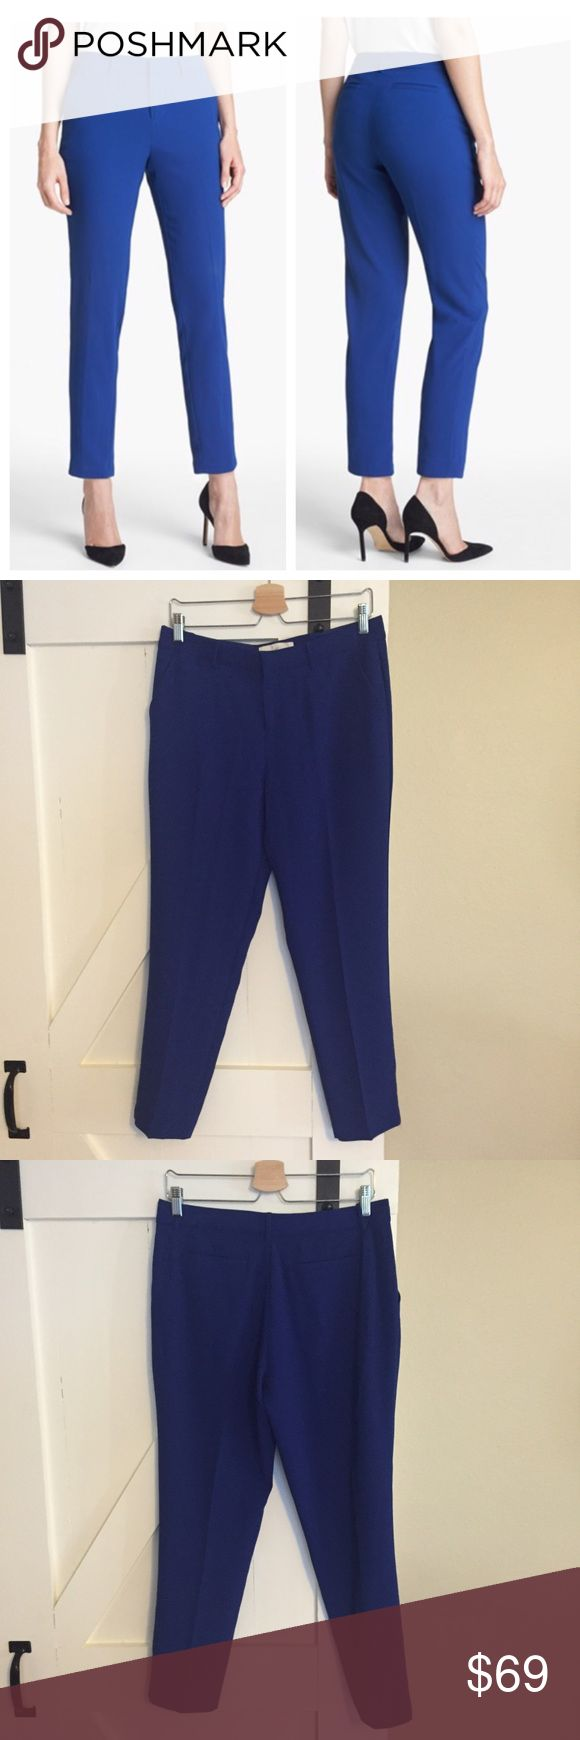 """Joie Sitara Cigarette cropped cobalt pants Joie Sitara cigarette pants in cobalt blue. Cropped ankle length fit with 26"""" inseam. 100% polyester. Front slant pockets and back pockets. Size 8, in like new condition, excellent with no flaws. Joie Pants Ankle & Cropped"""